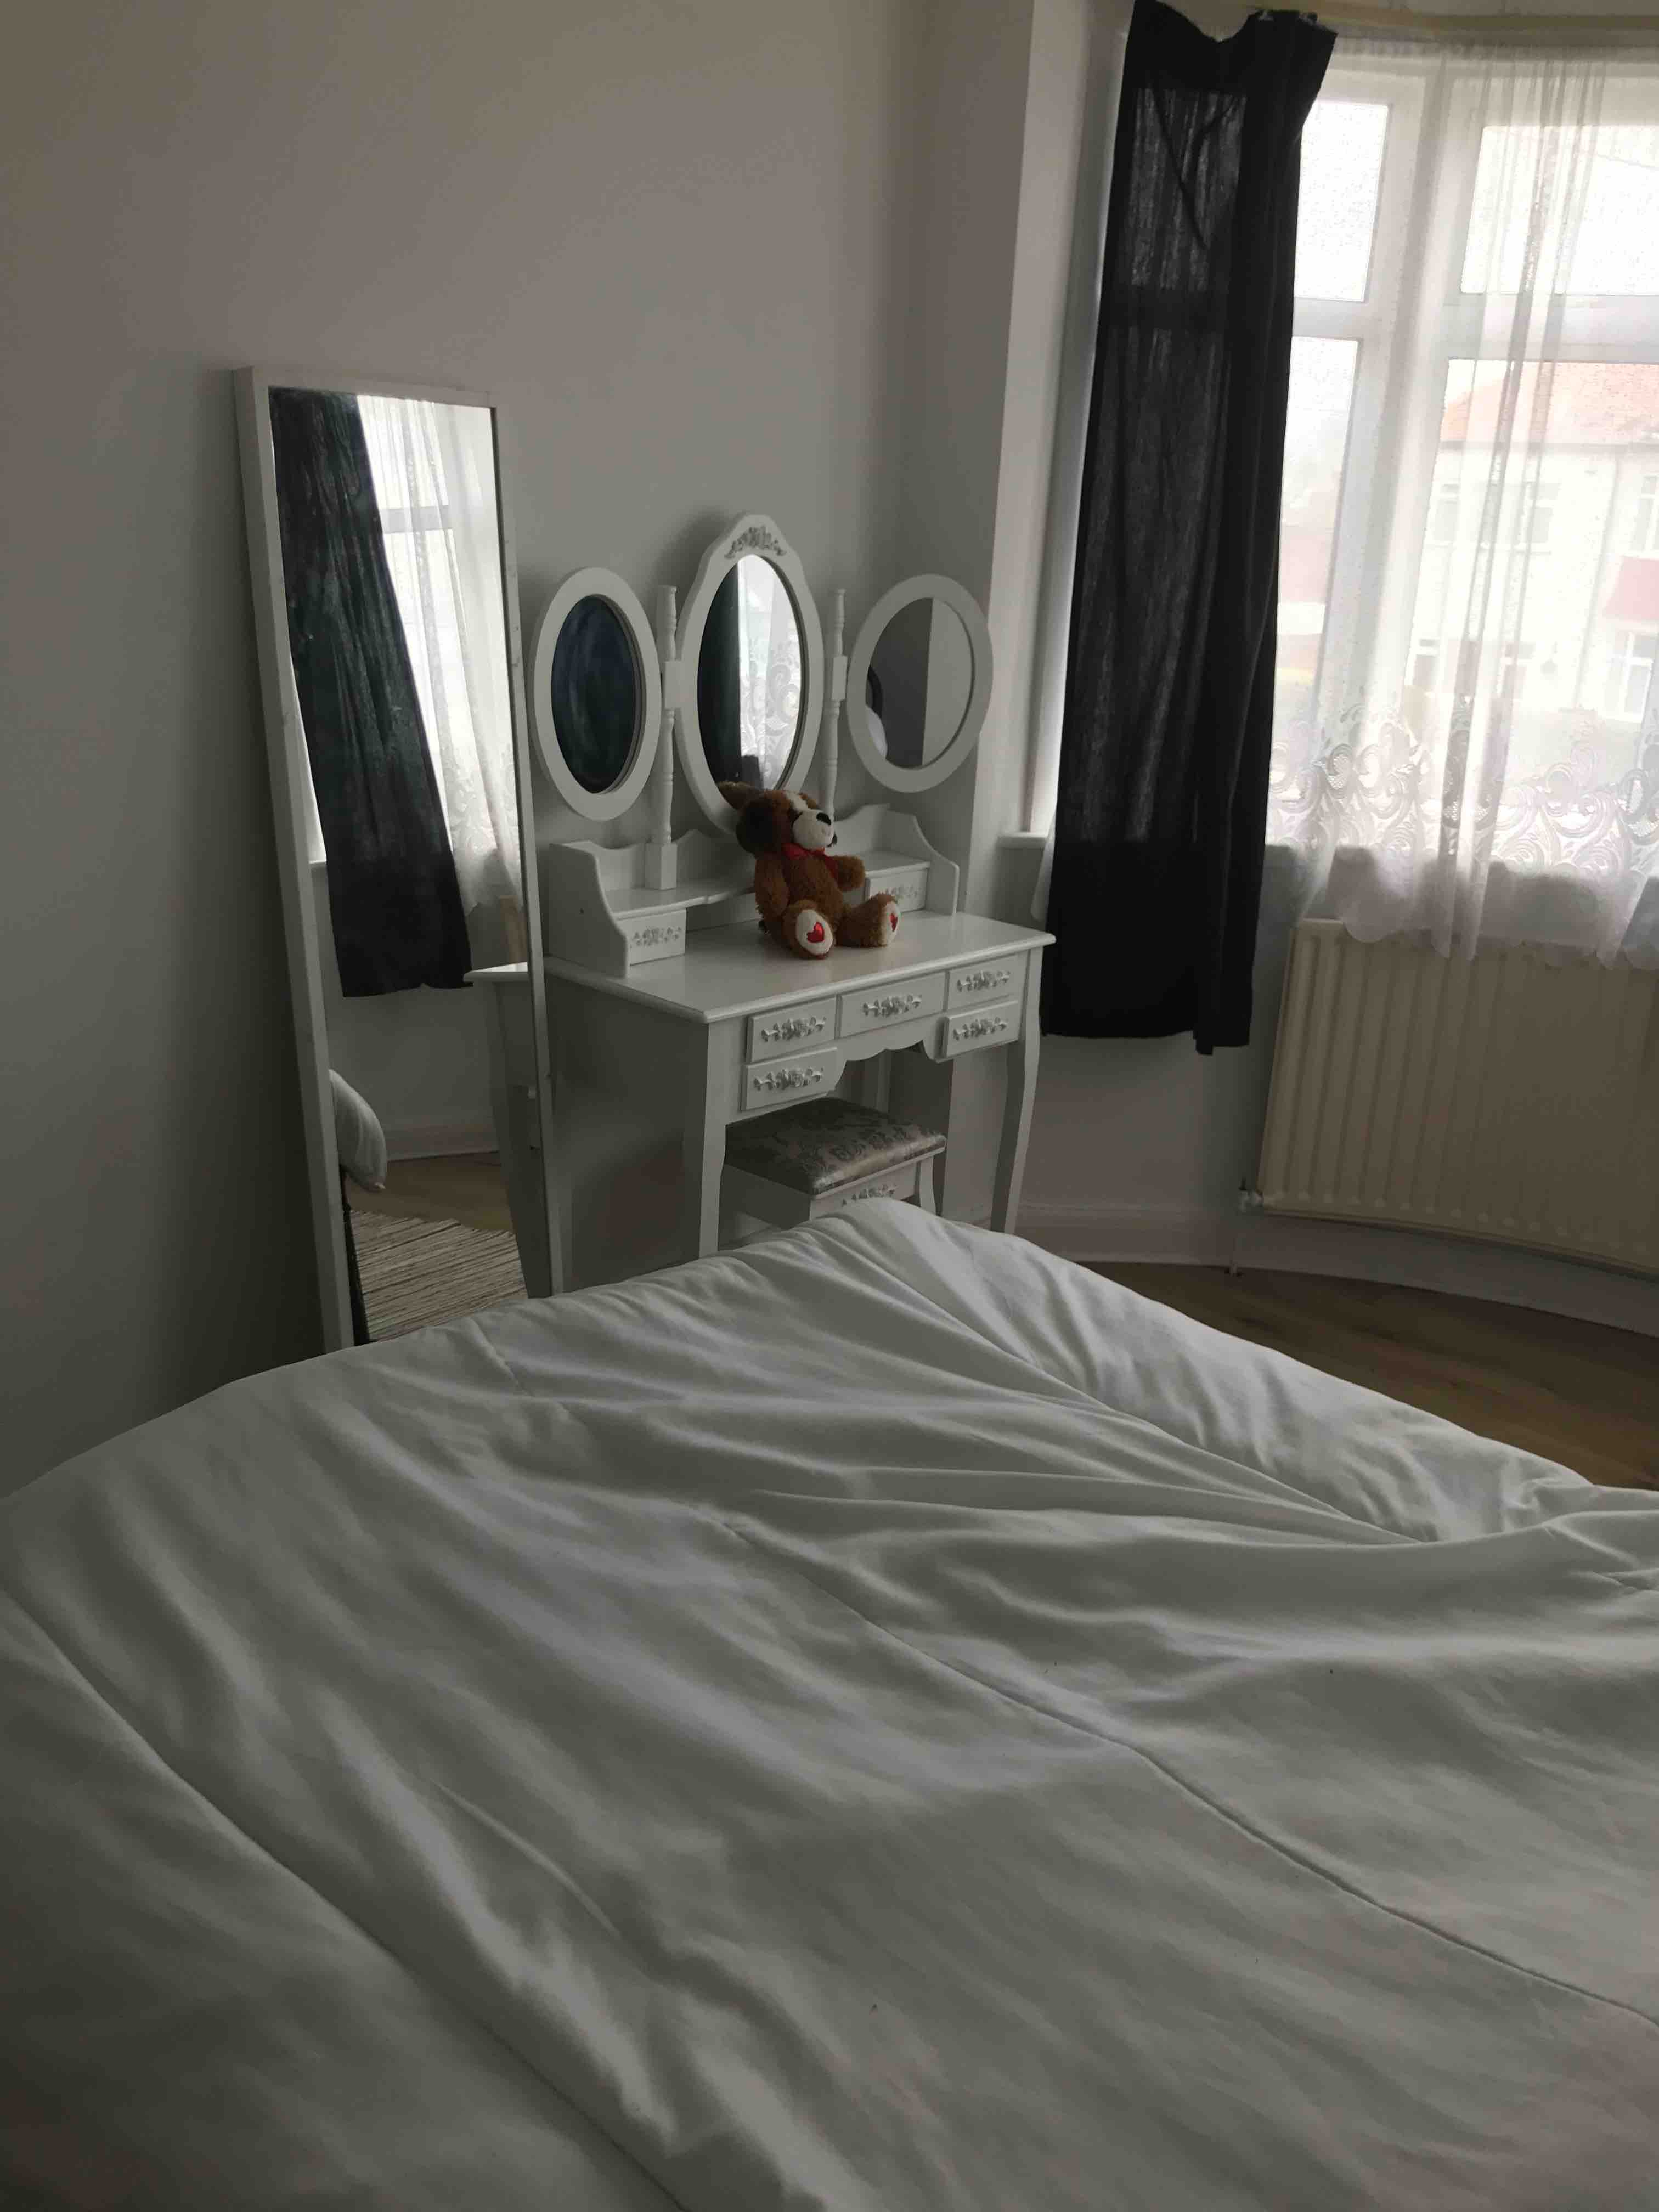 1 room in Tokyngton, London, HA9 8AZ RoomsLocal image